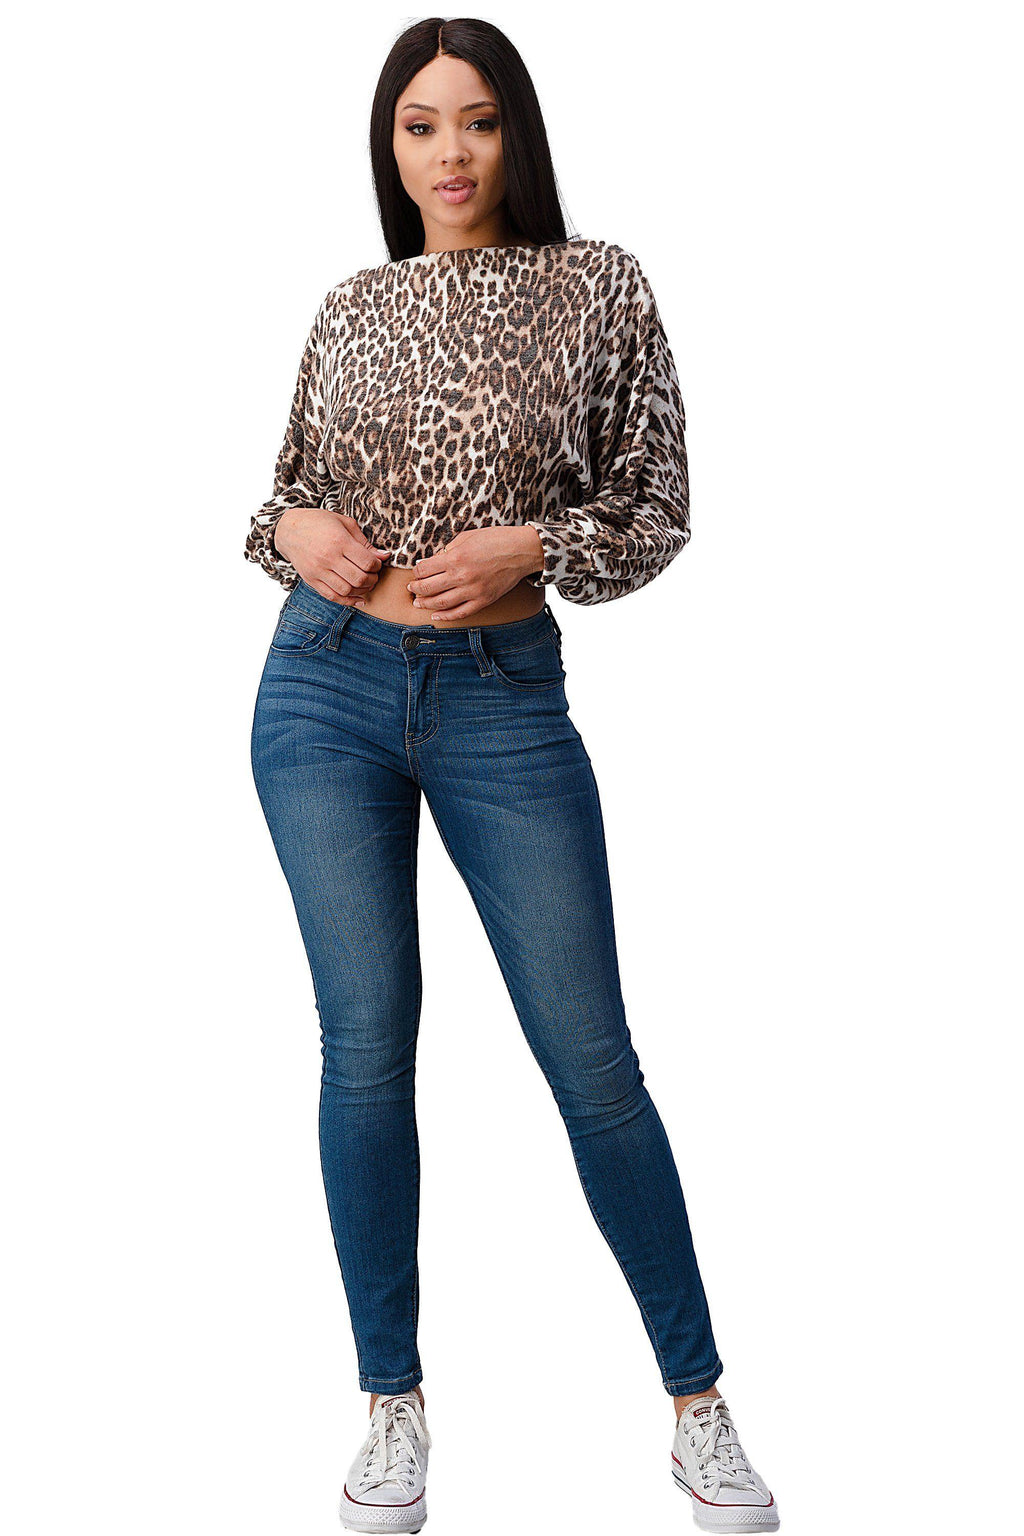 Blushed Knit Leopard Dolman Blouse Top